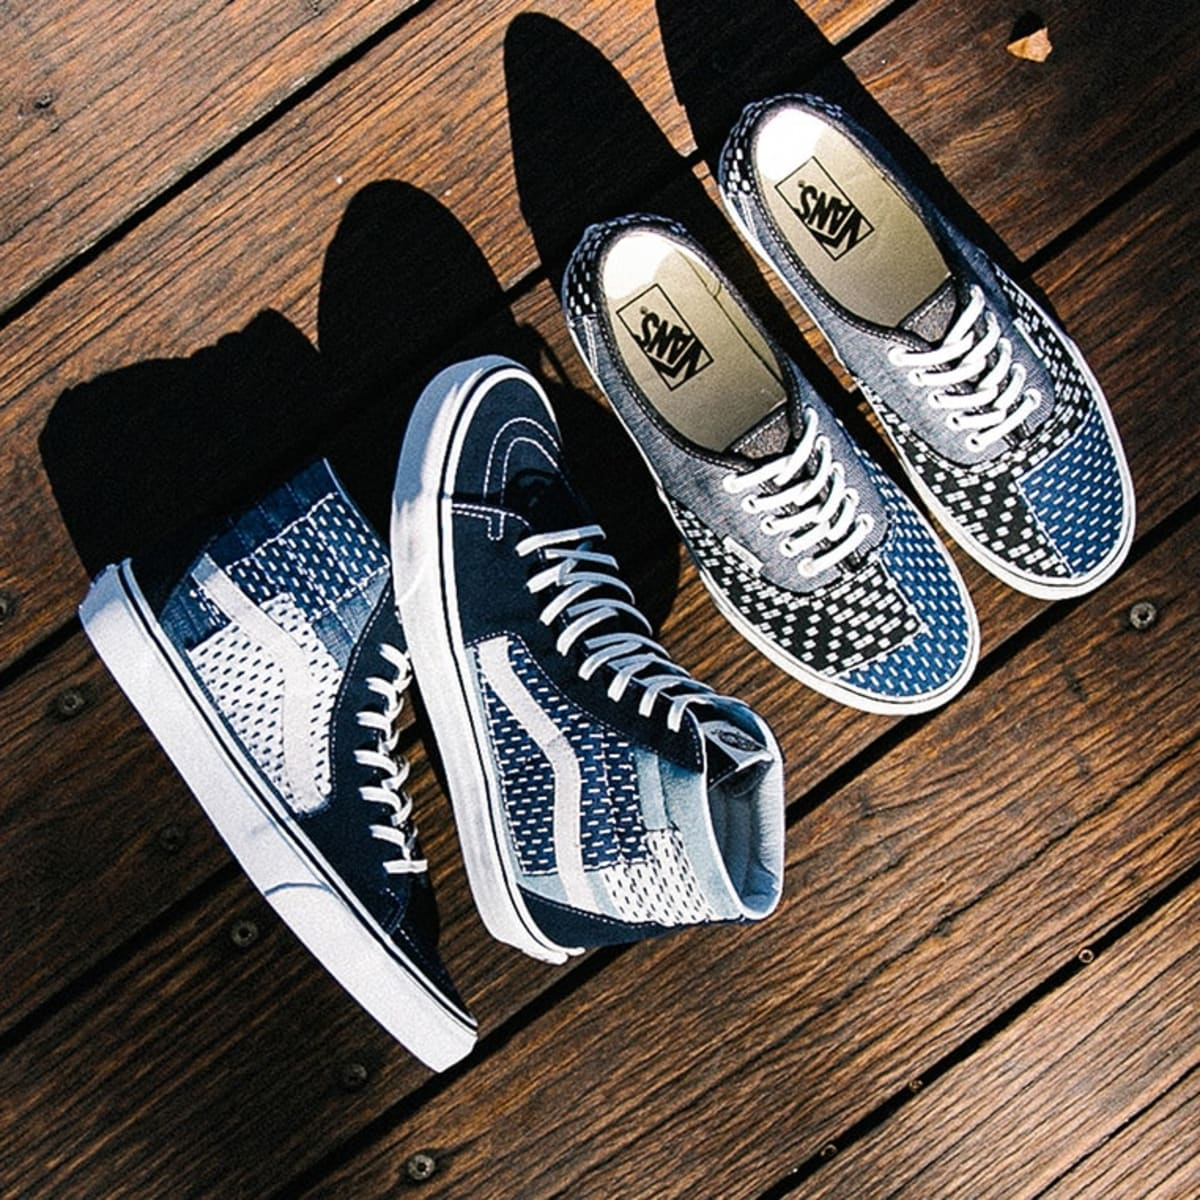 Vans' New Patchwork Pack Is Inspired by the Art of Japanese Boro ...